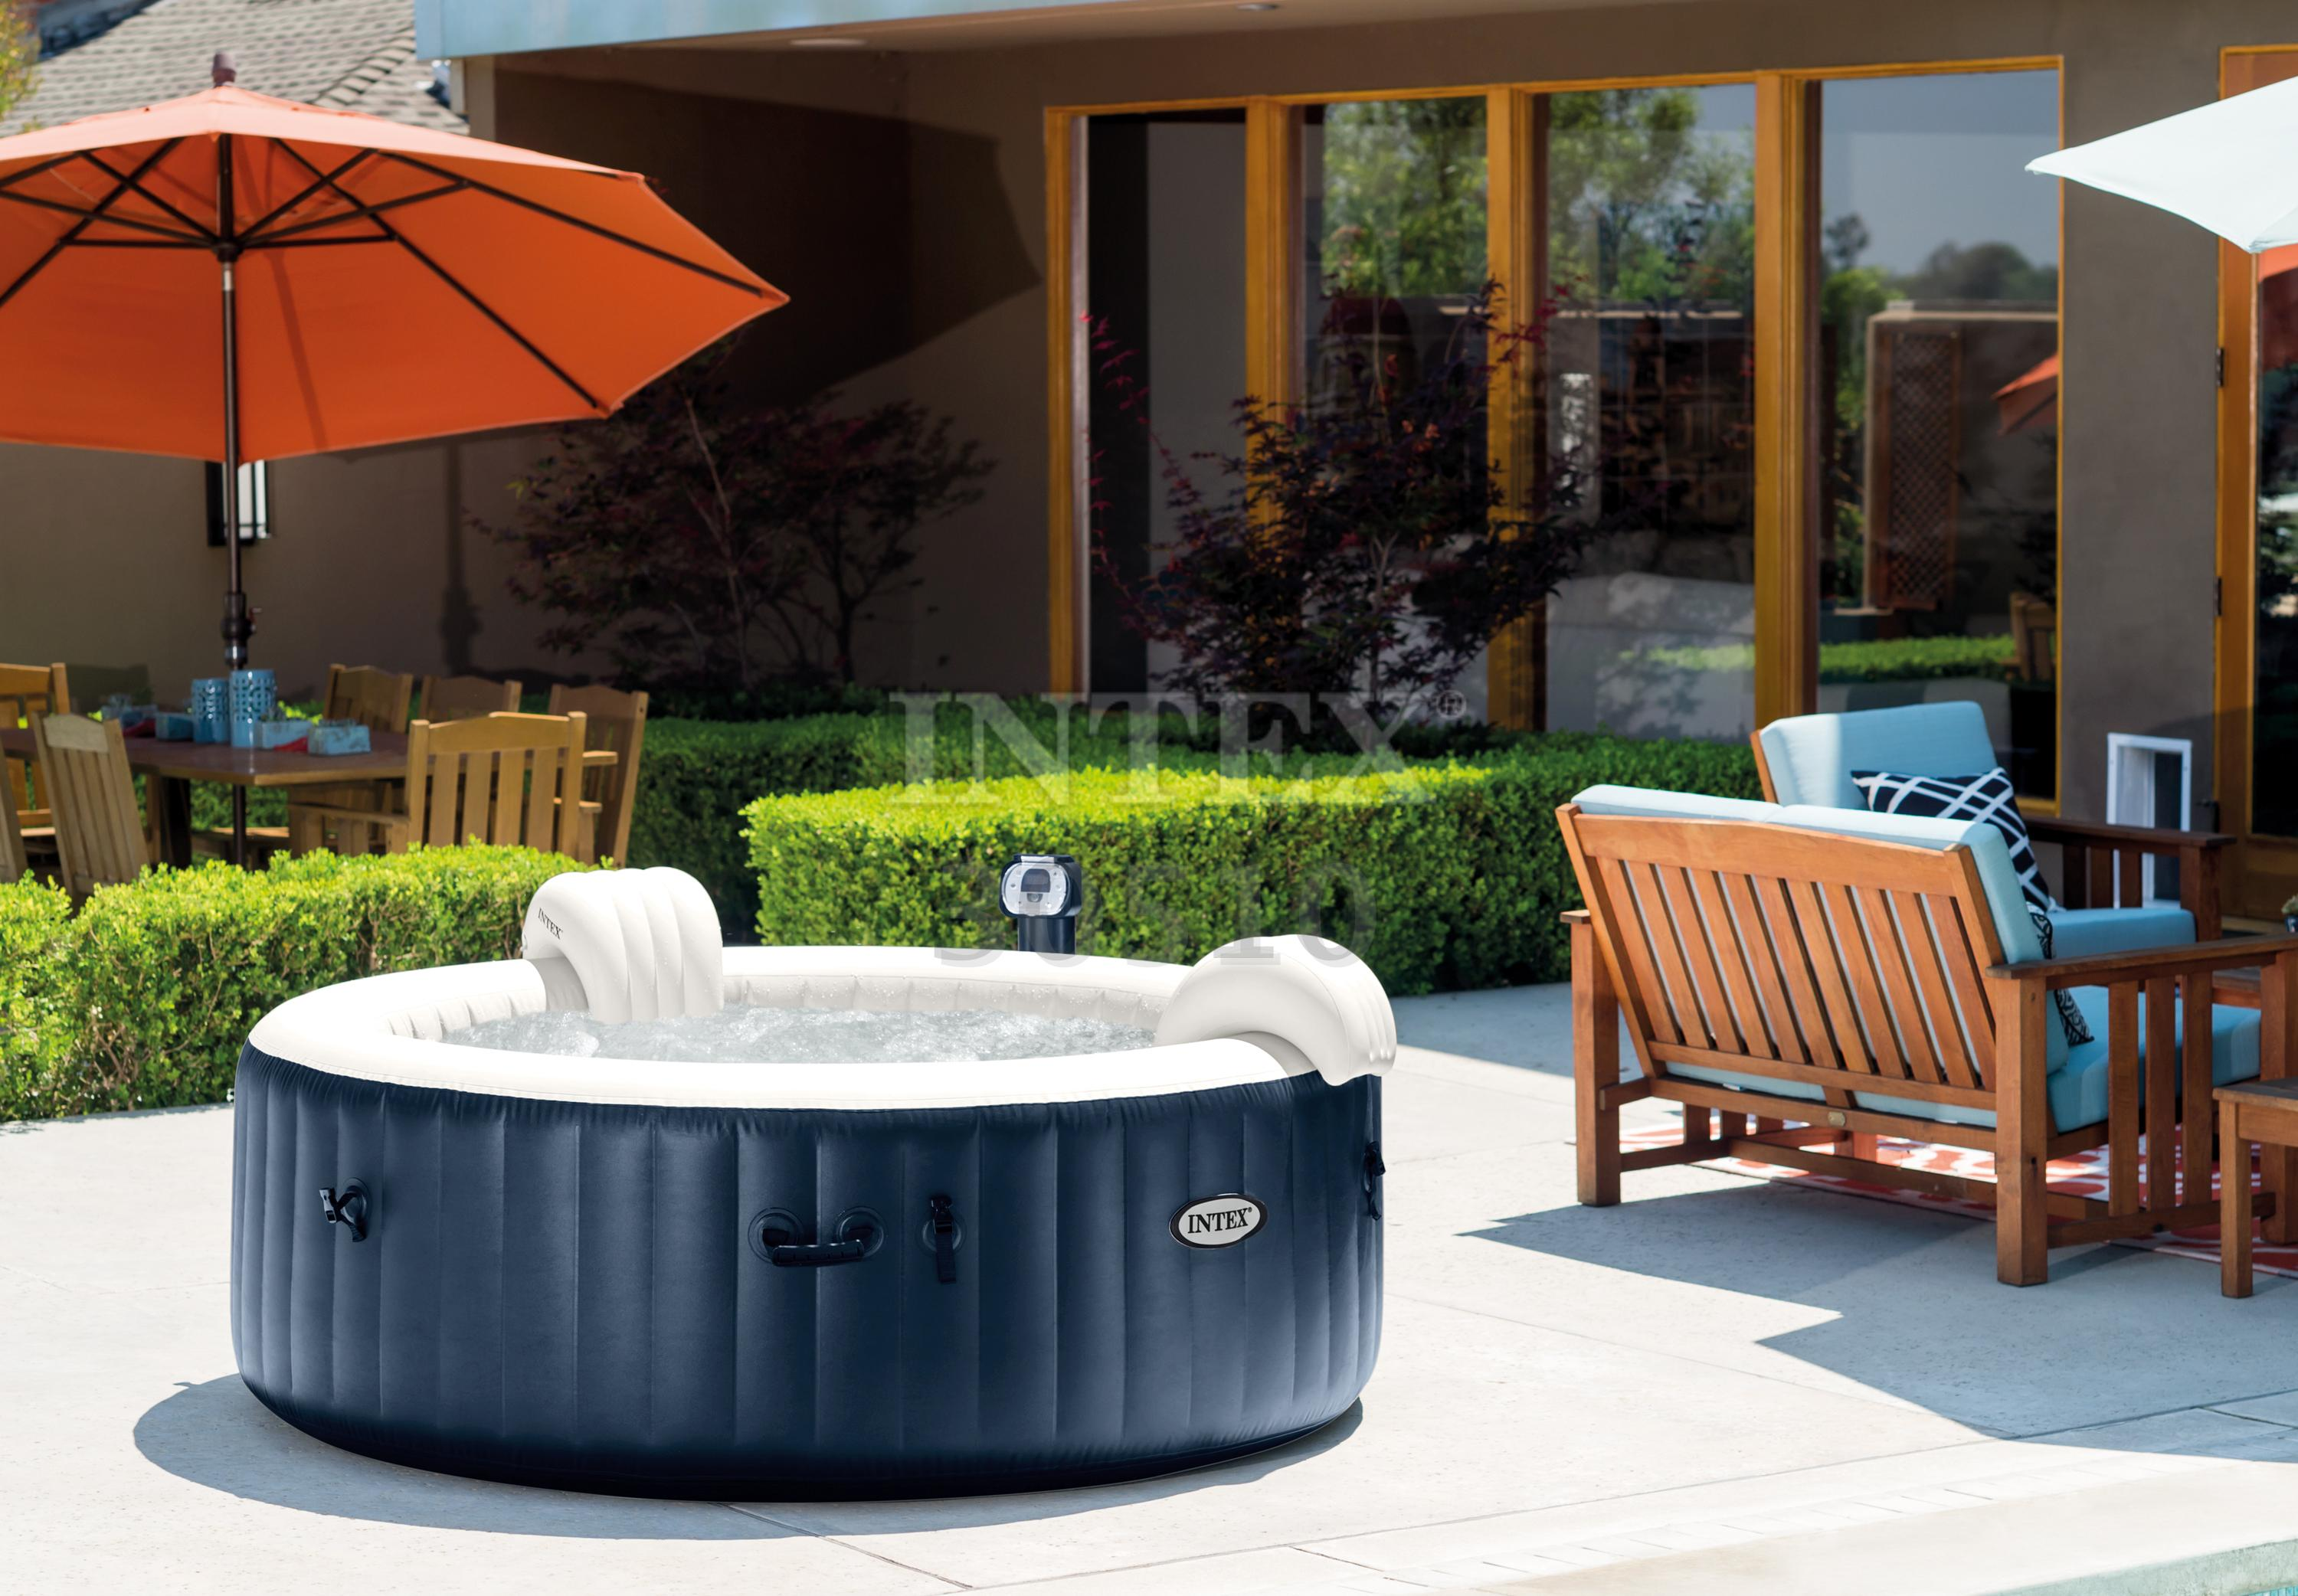 intex pure spa 6 person inflatable portable heated bubble hot tub 28409e ebay. Black Bedroom Furniture Sets. Home Design Ideas